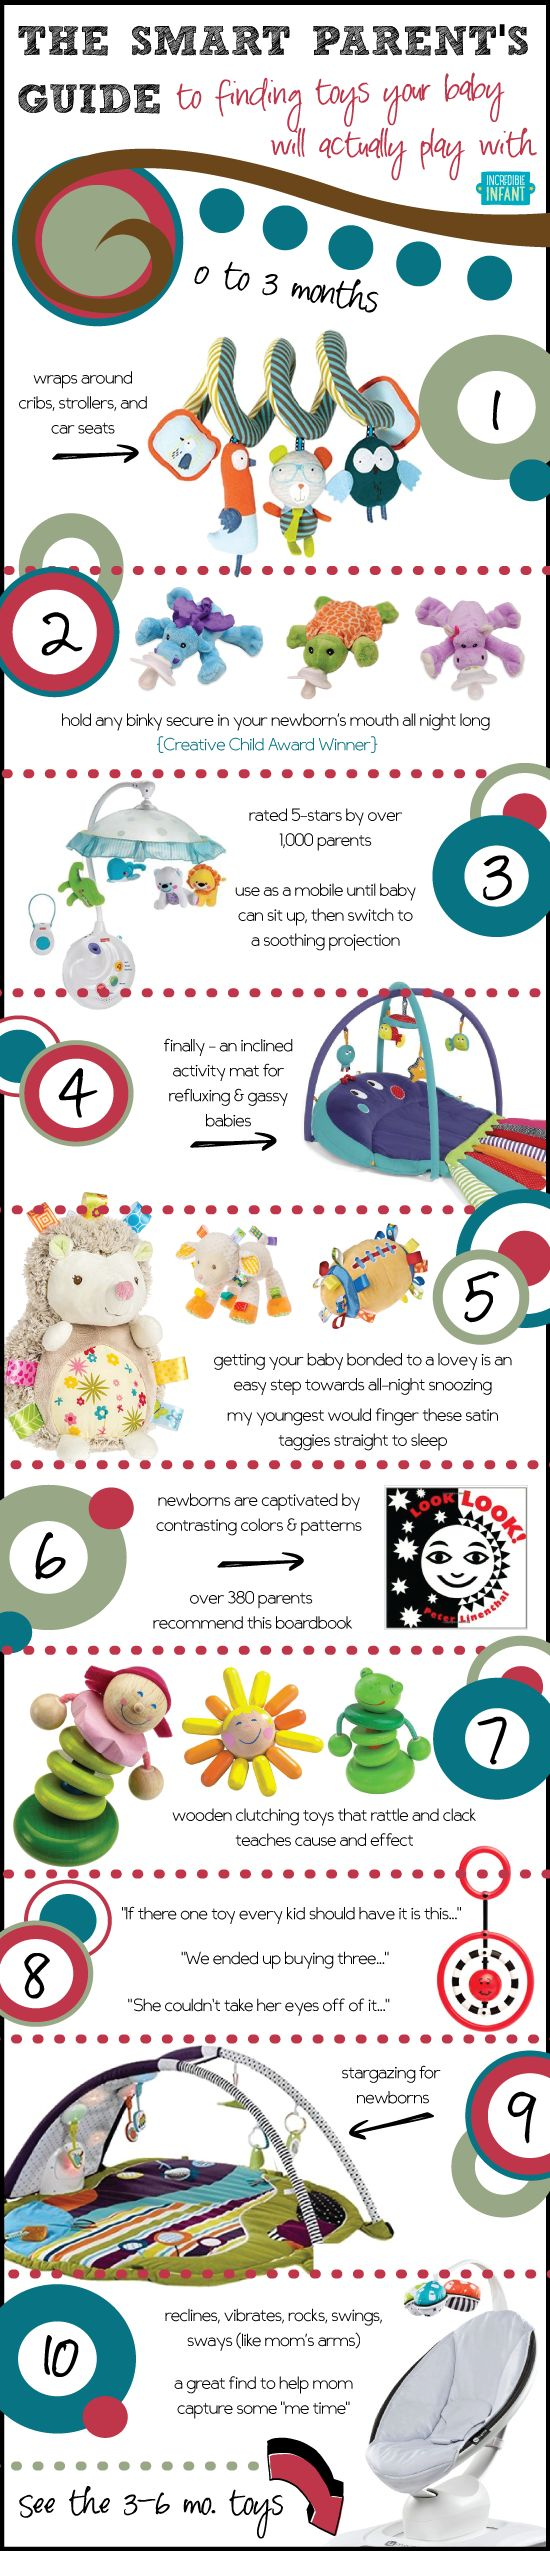 Top 10 Smart Baby Toys for 0-3 Month Olds - http://www.incredibleinfant.com